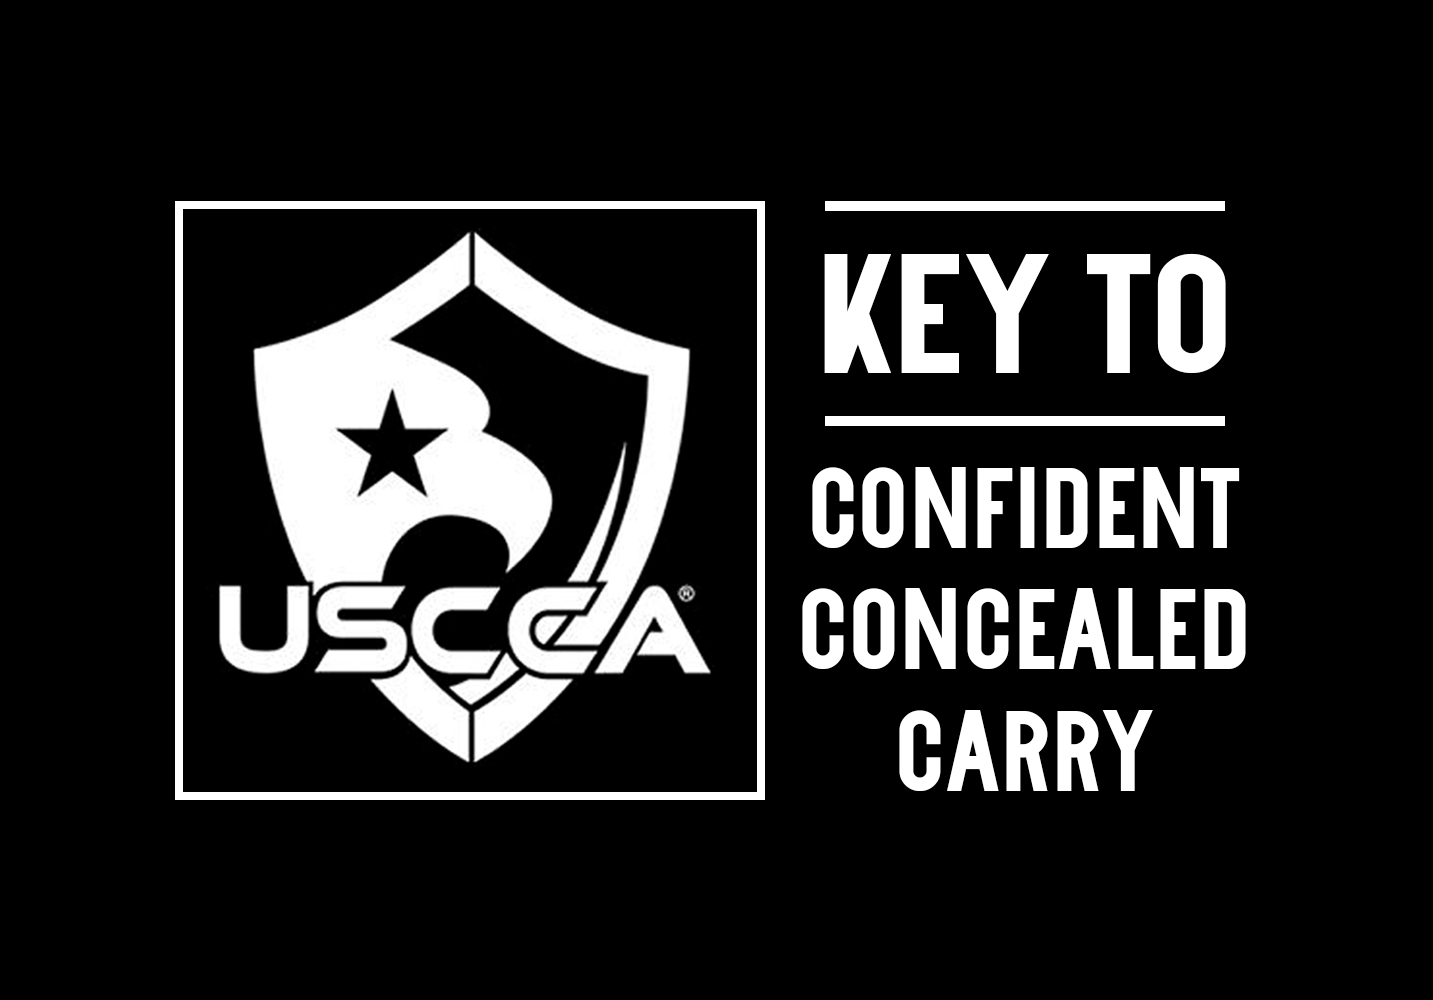 USCCA – Key to Confident Concealed Carry